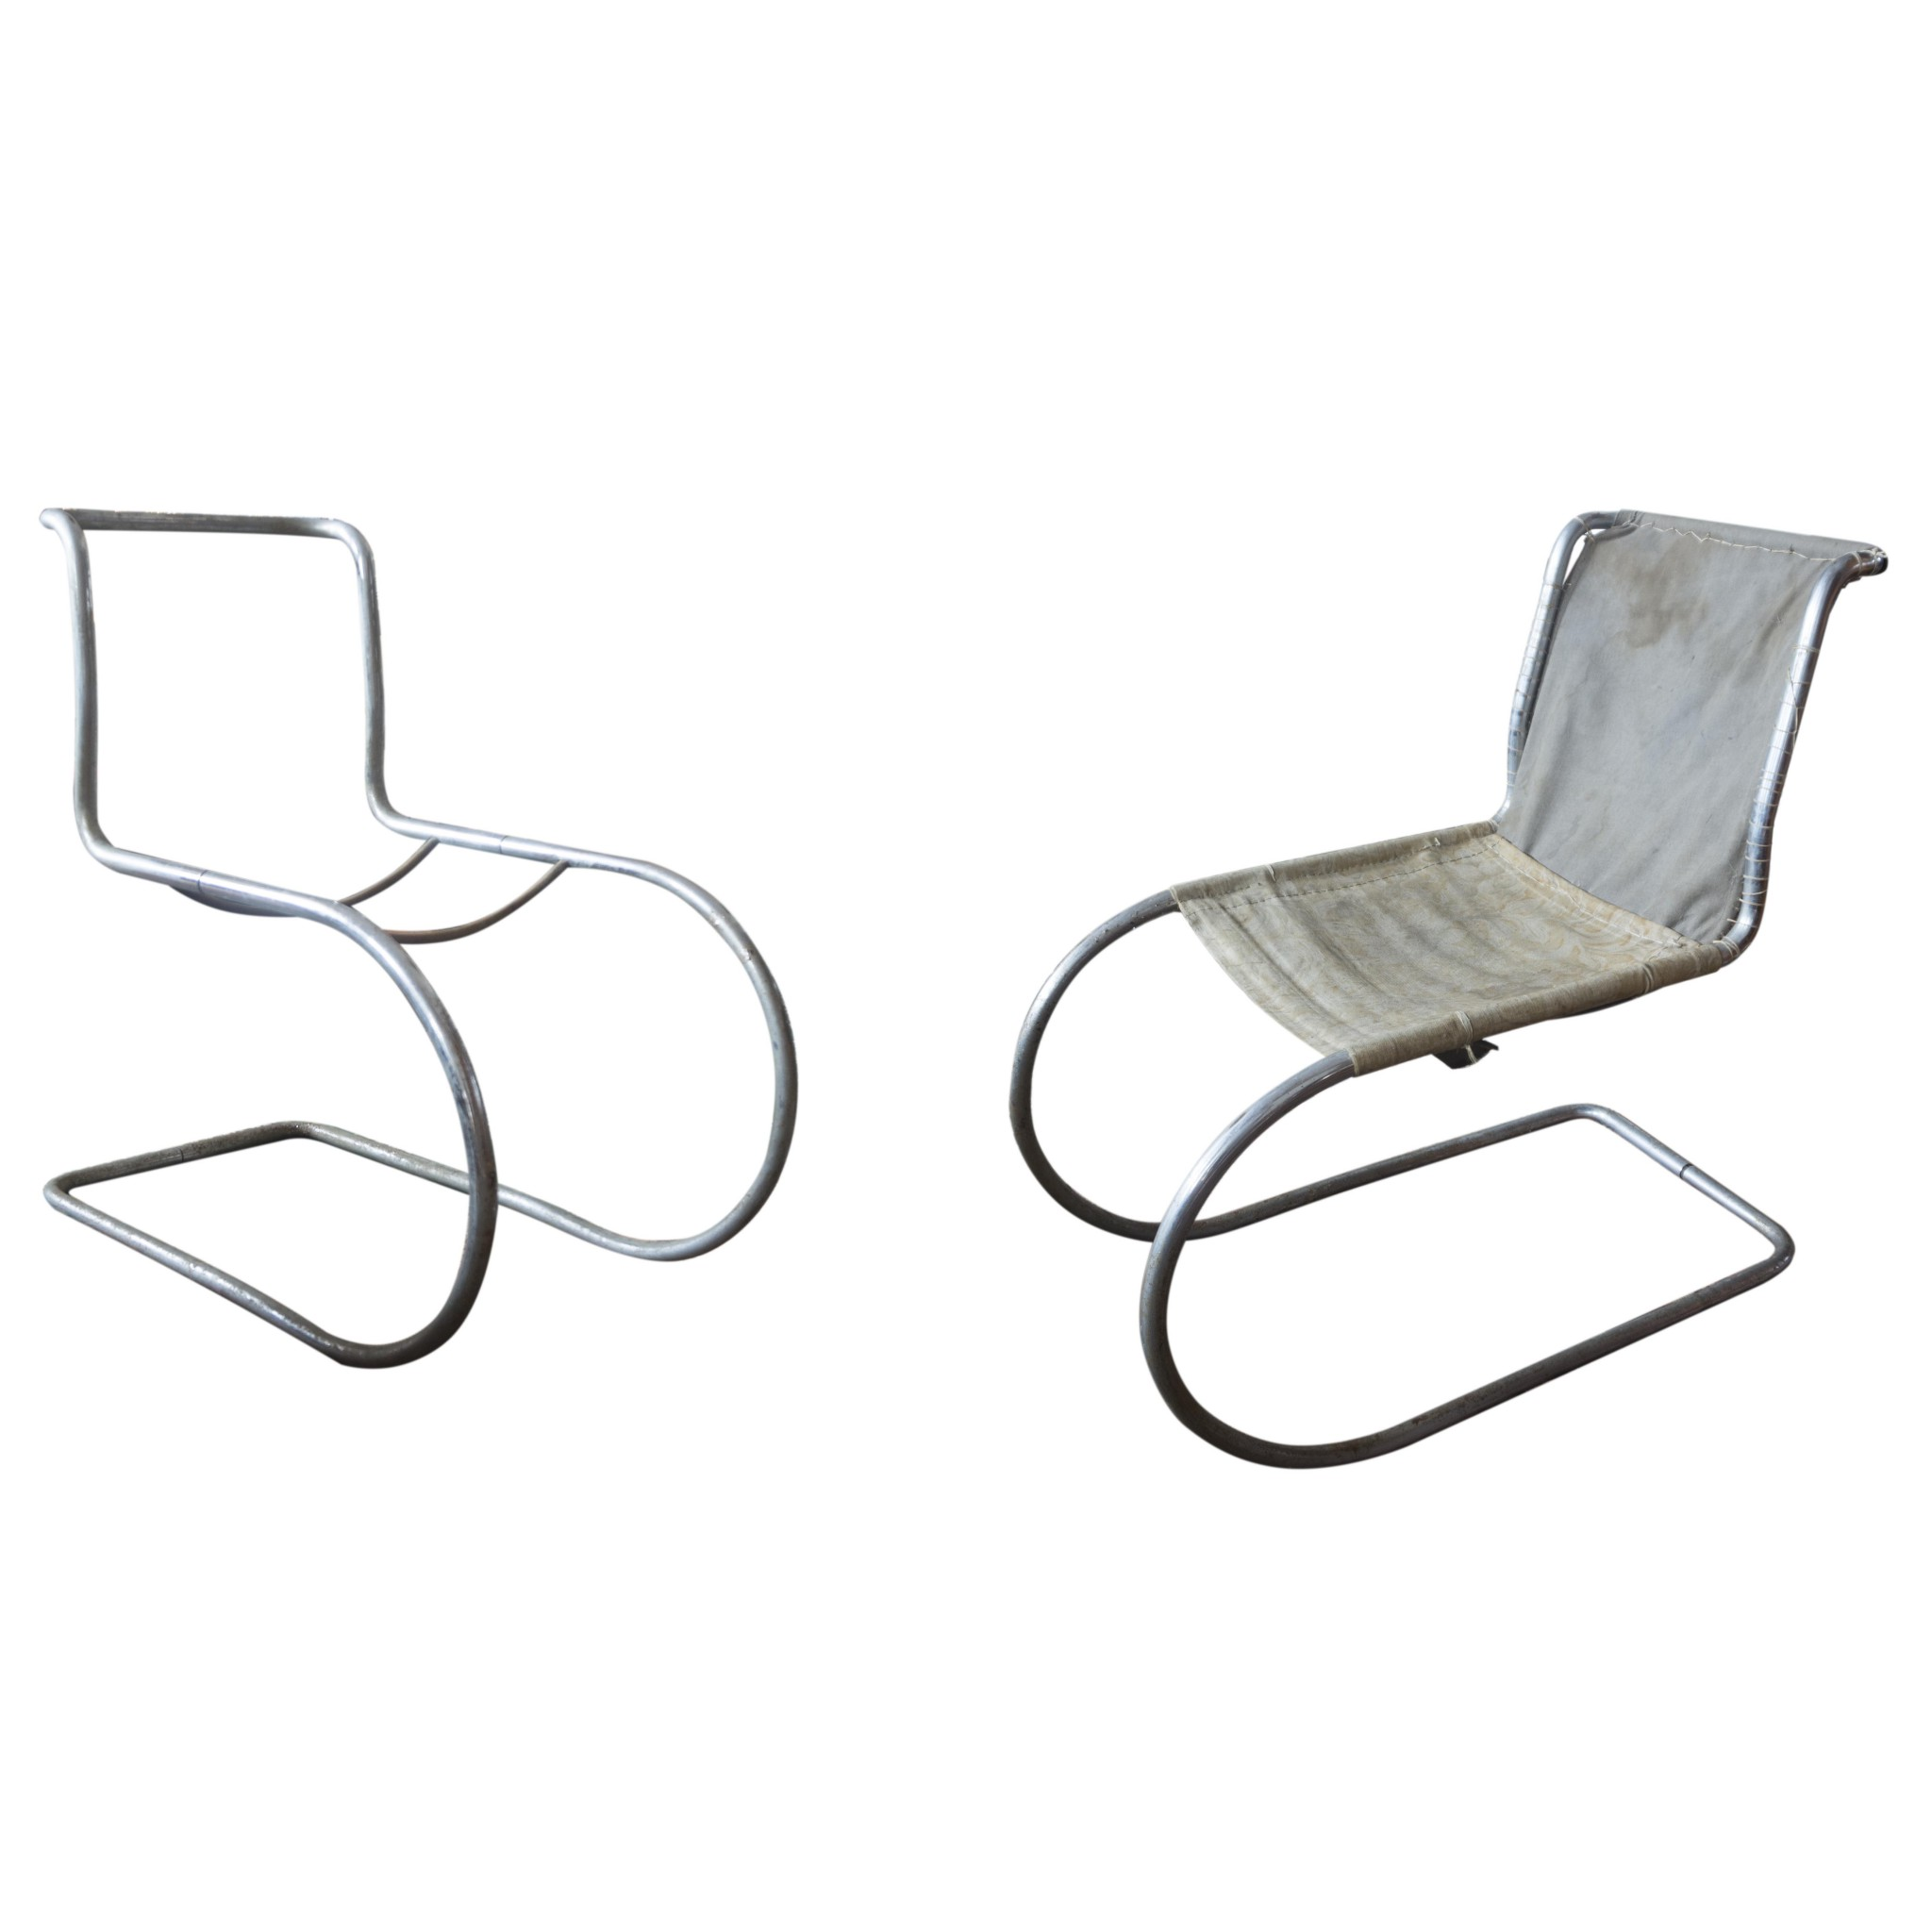 Pair of Model MR 10 chairs by Mies van der Rohe circa 1927